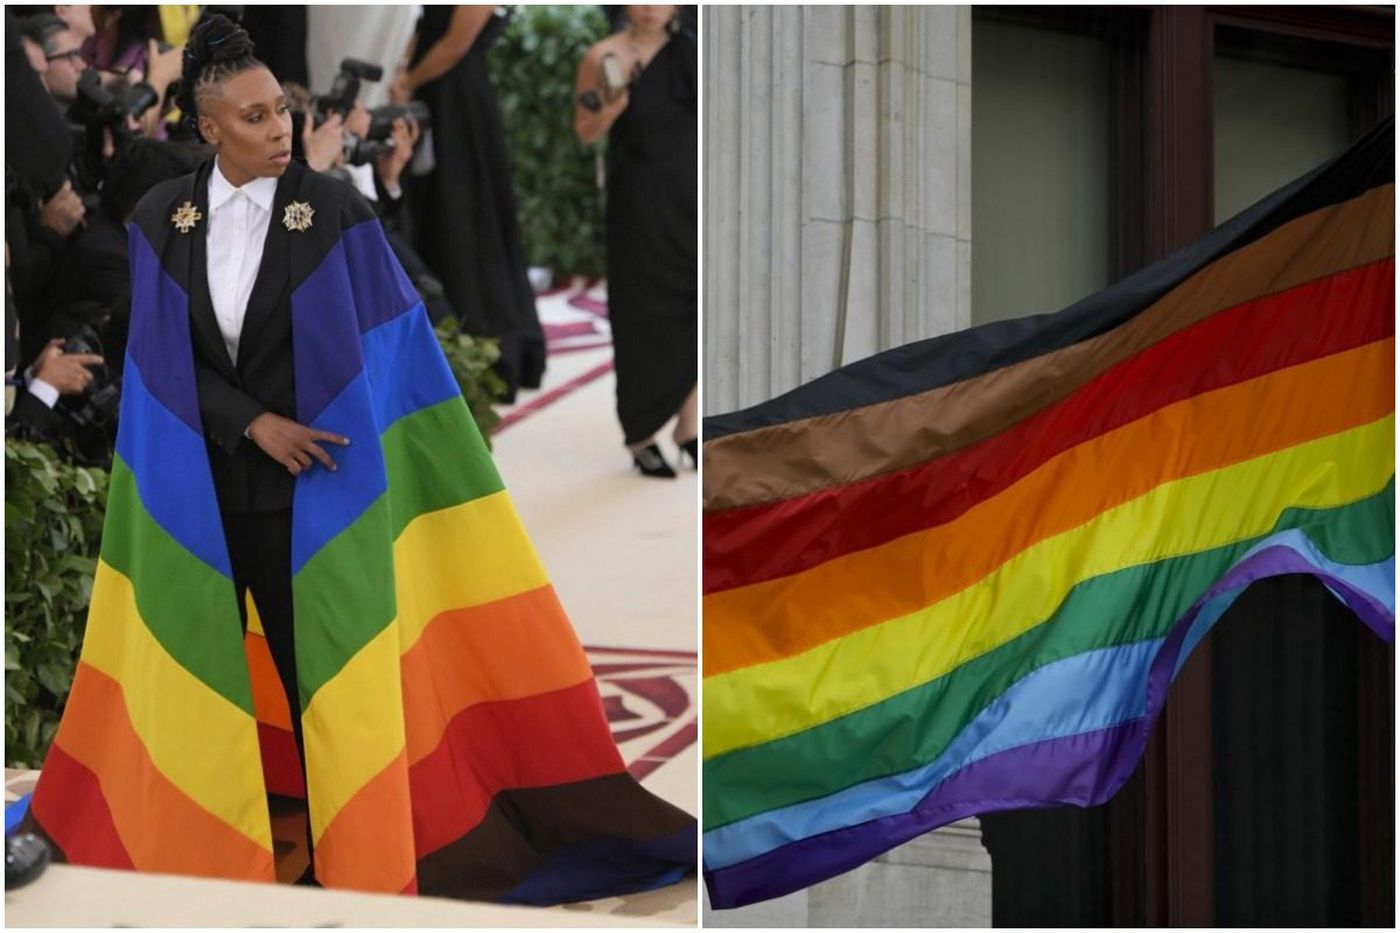 Lena Waithe's rainbow cape at the Met Gala mirrors Philly's LGBT flag